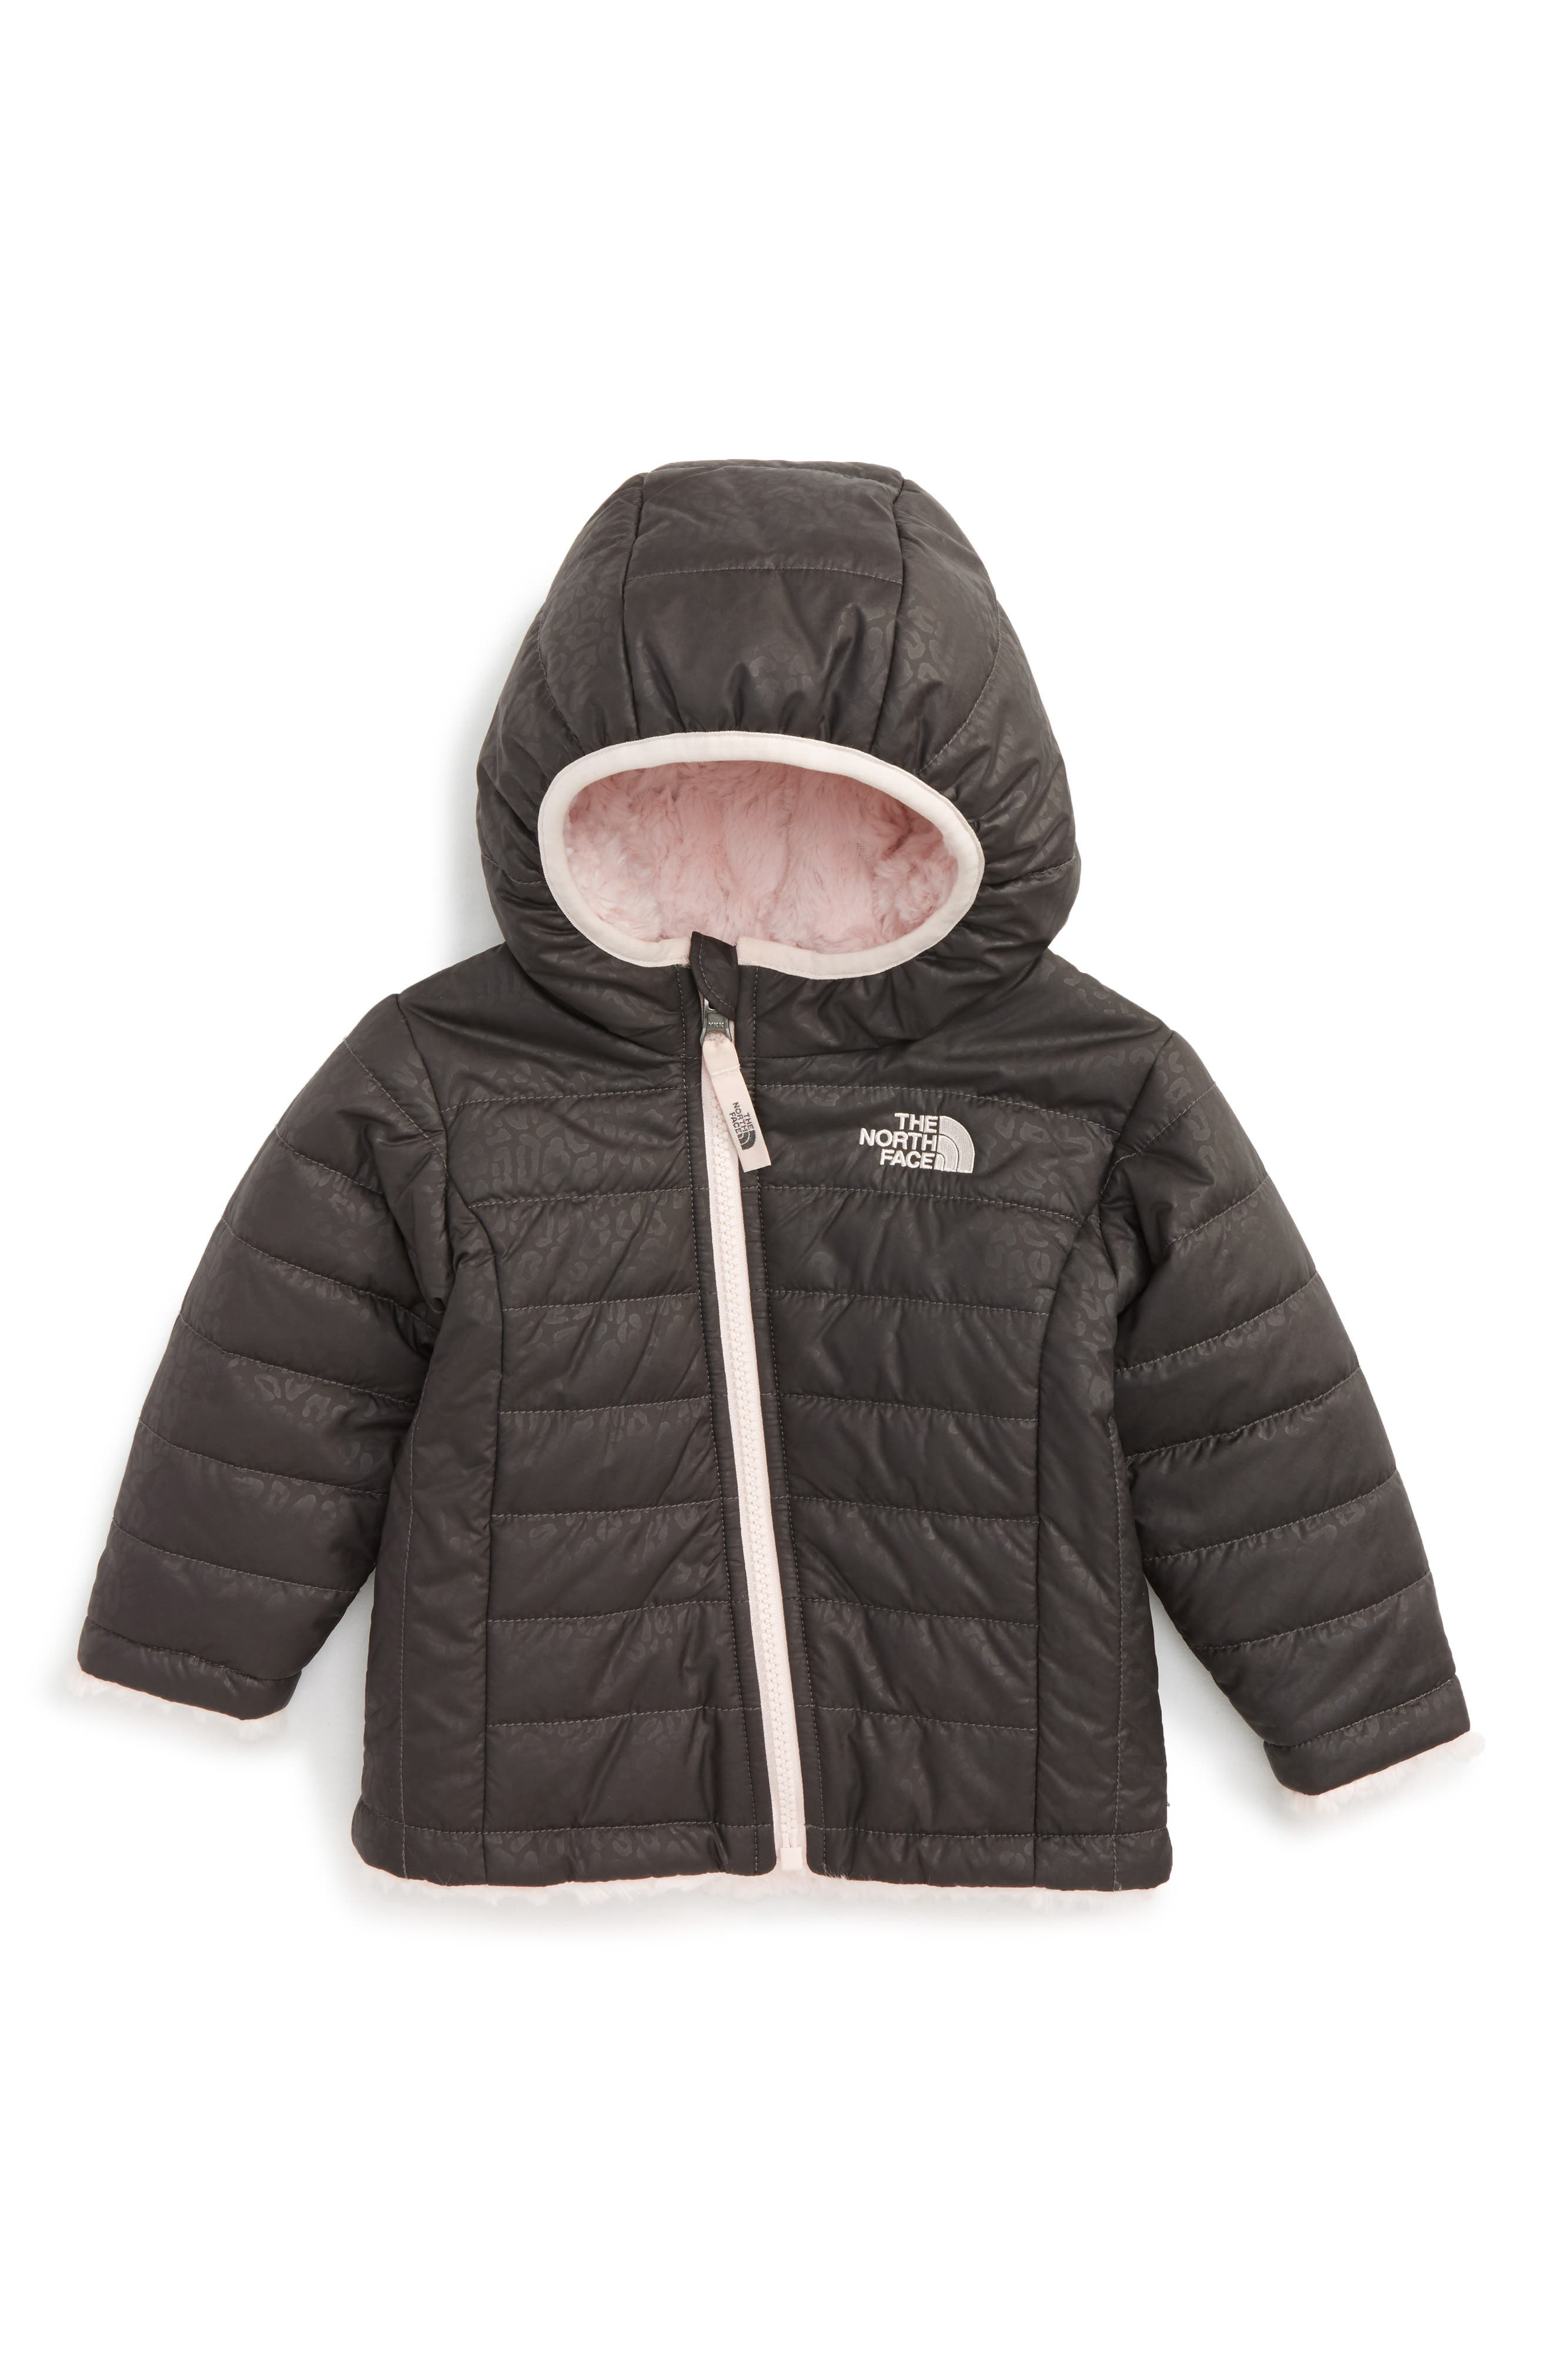 Alternate Image 1 Selected - The North Face Mossbud Swirl Reversible Water Repellent Jacket (Baby Girls)